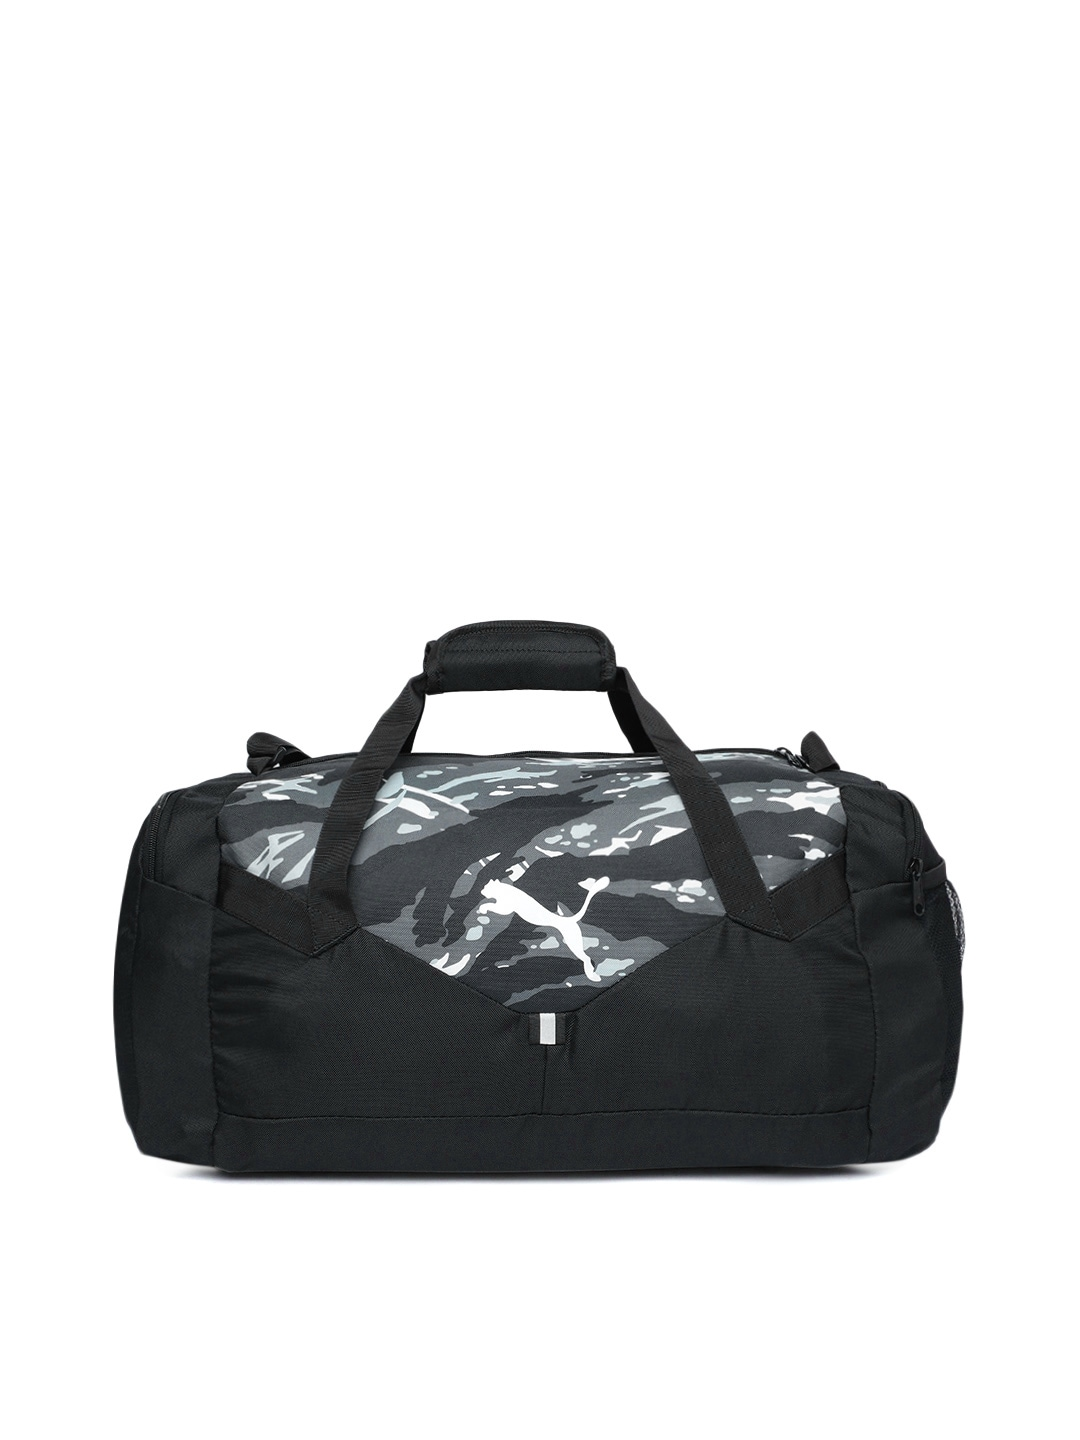 74adb0e125 Puma Travel Bags - Buy Puma Travel Bags online in India